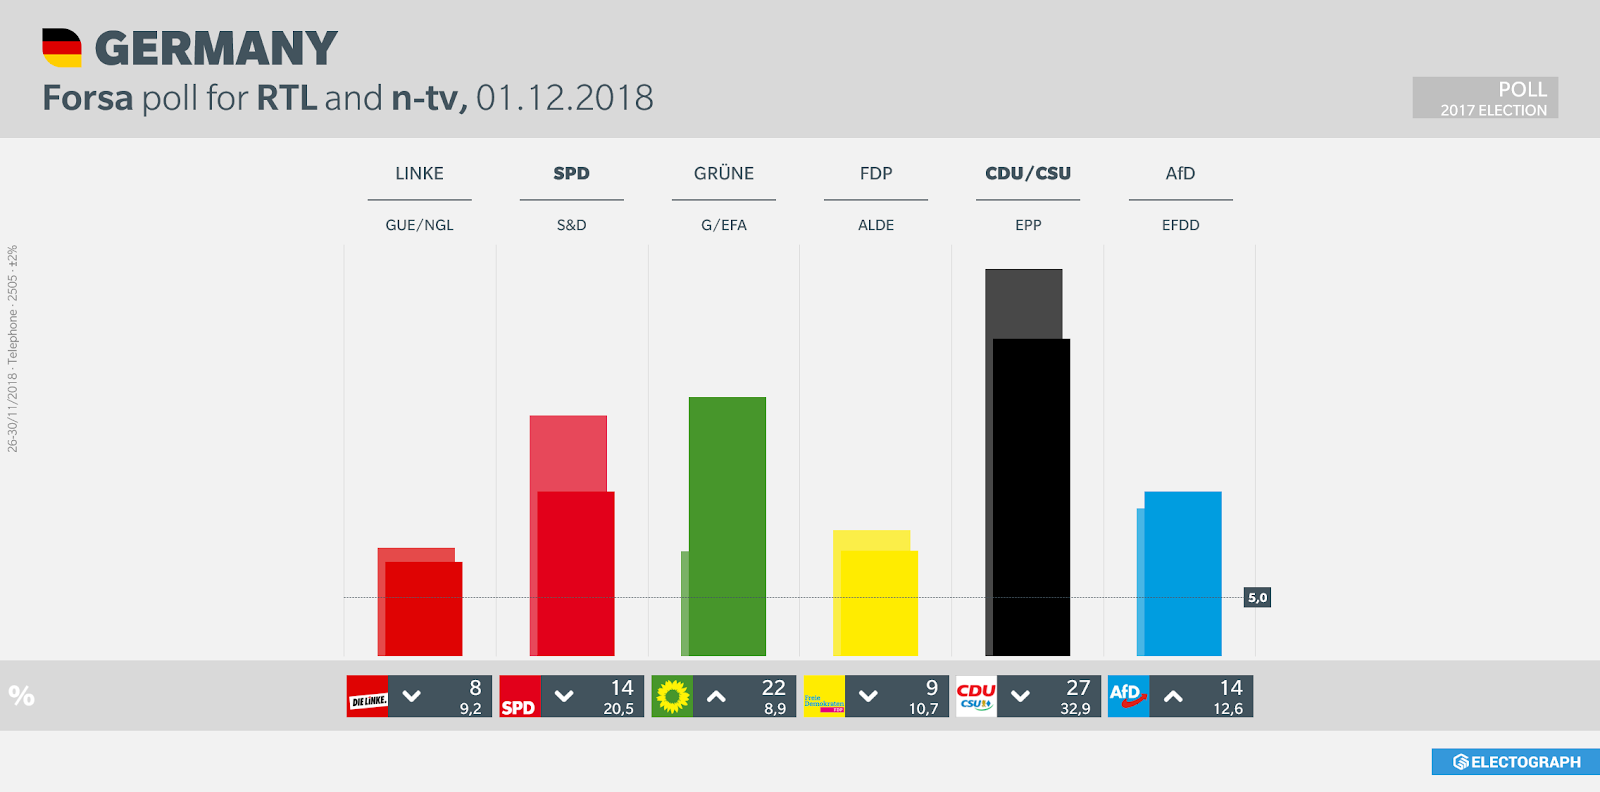 GERMANY: Forsa poll chart for RTL and n-tv, 1 December 2018